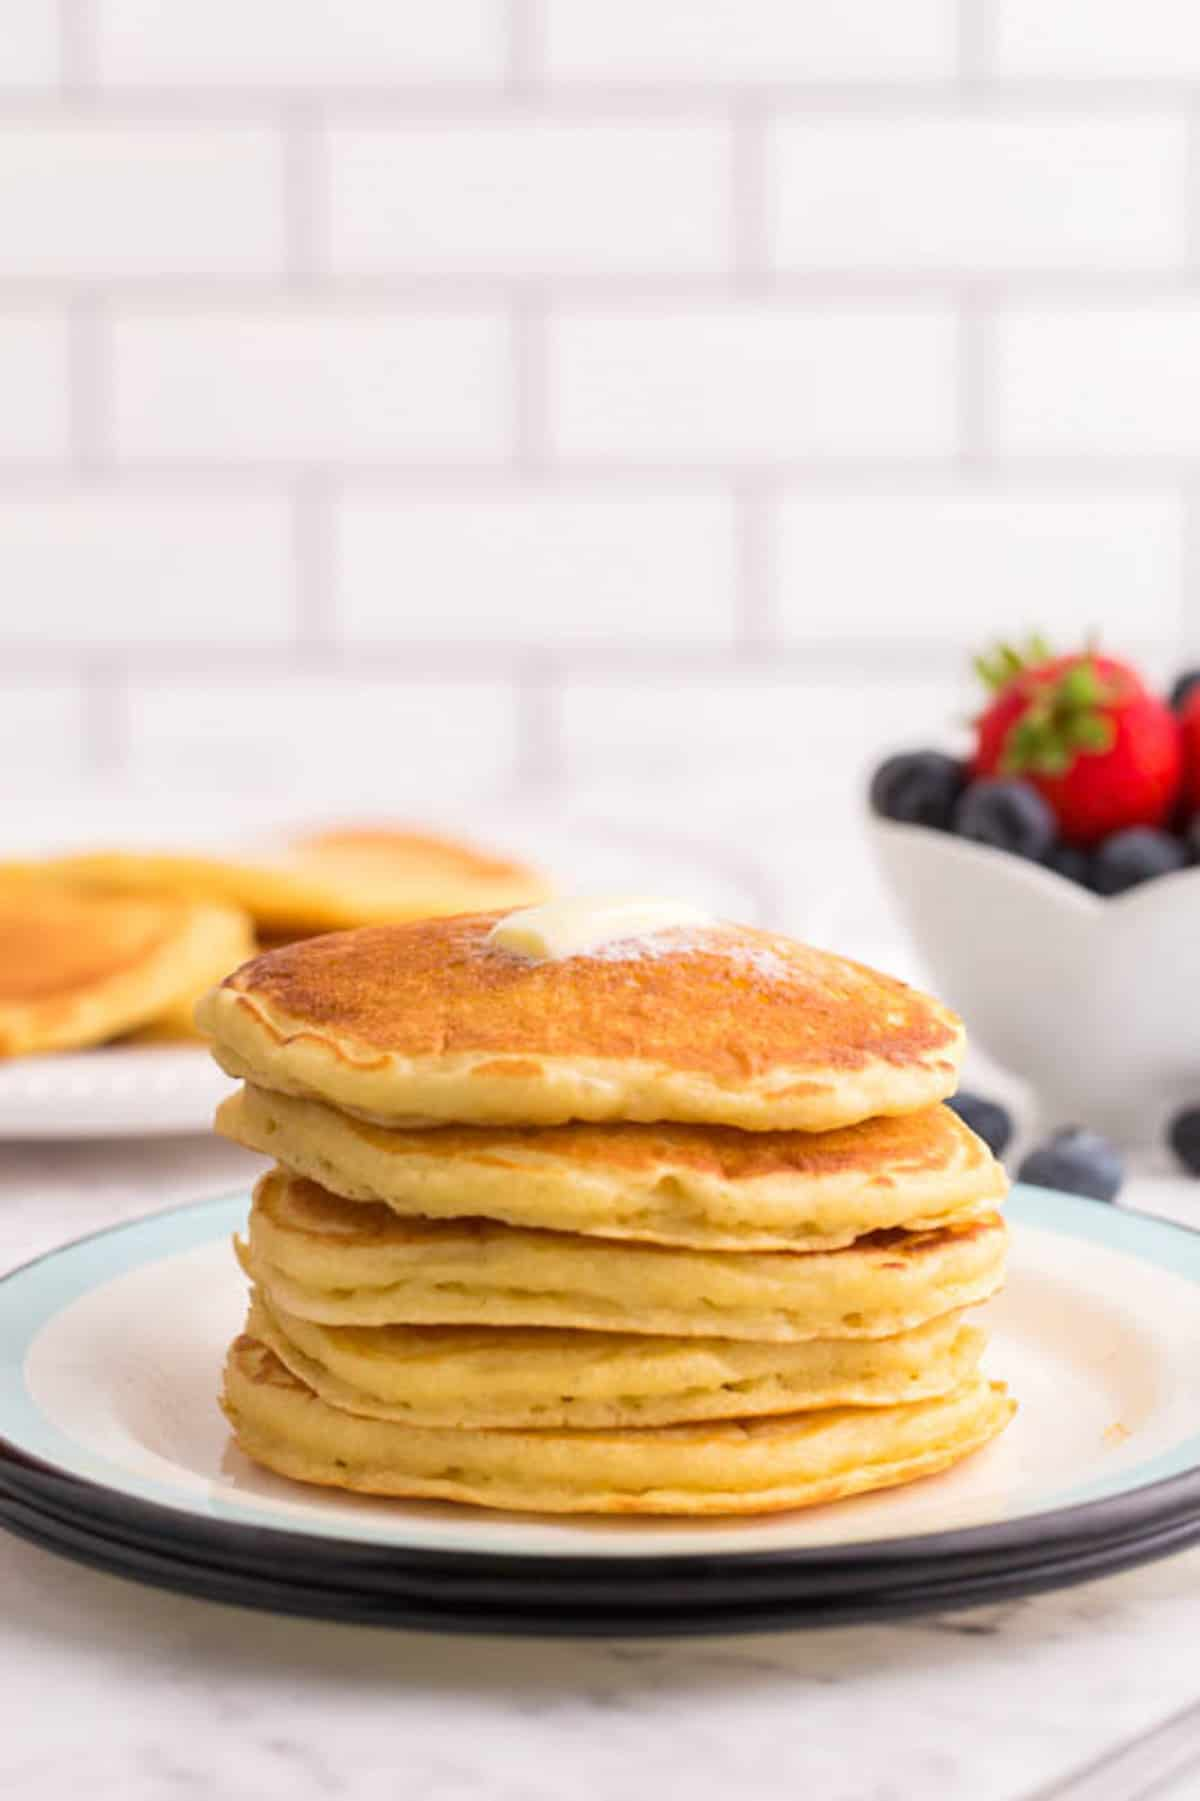 Stack of fluffy pancakes on a plate.